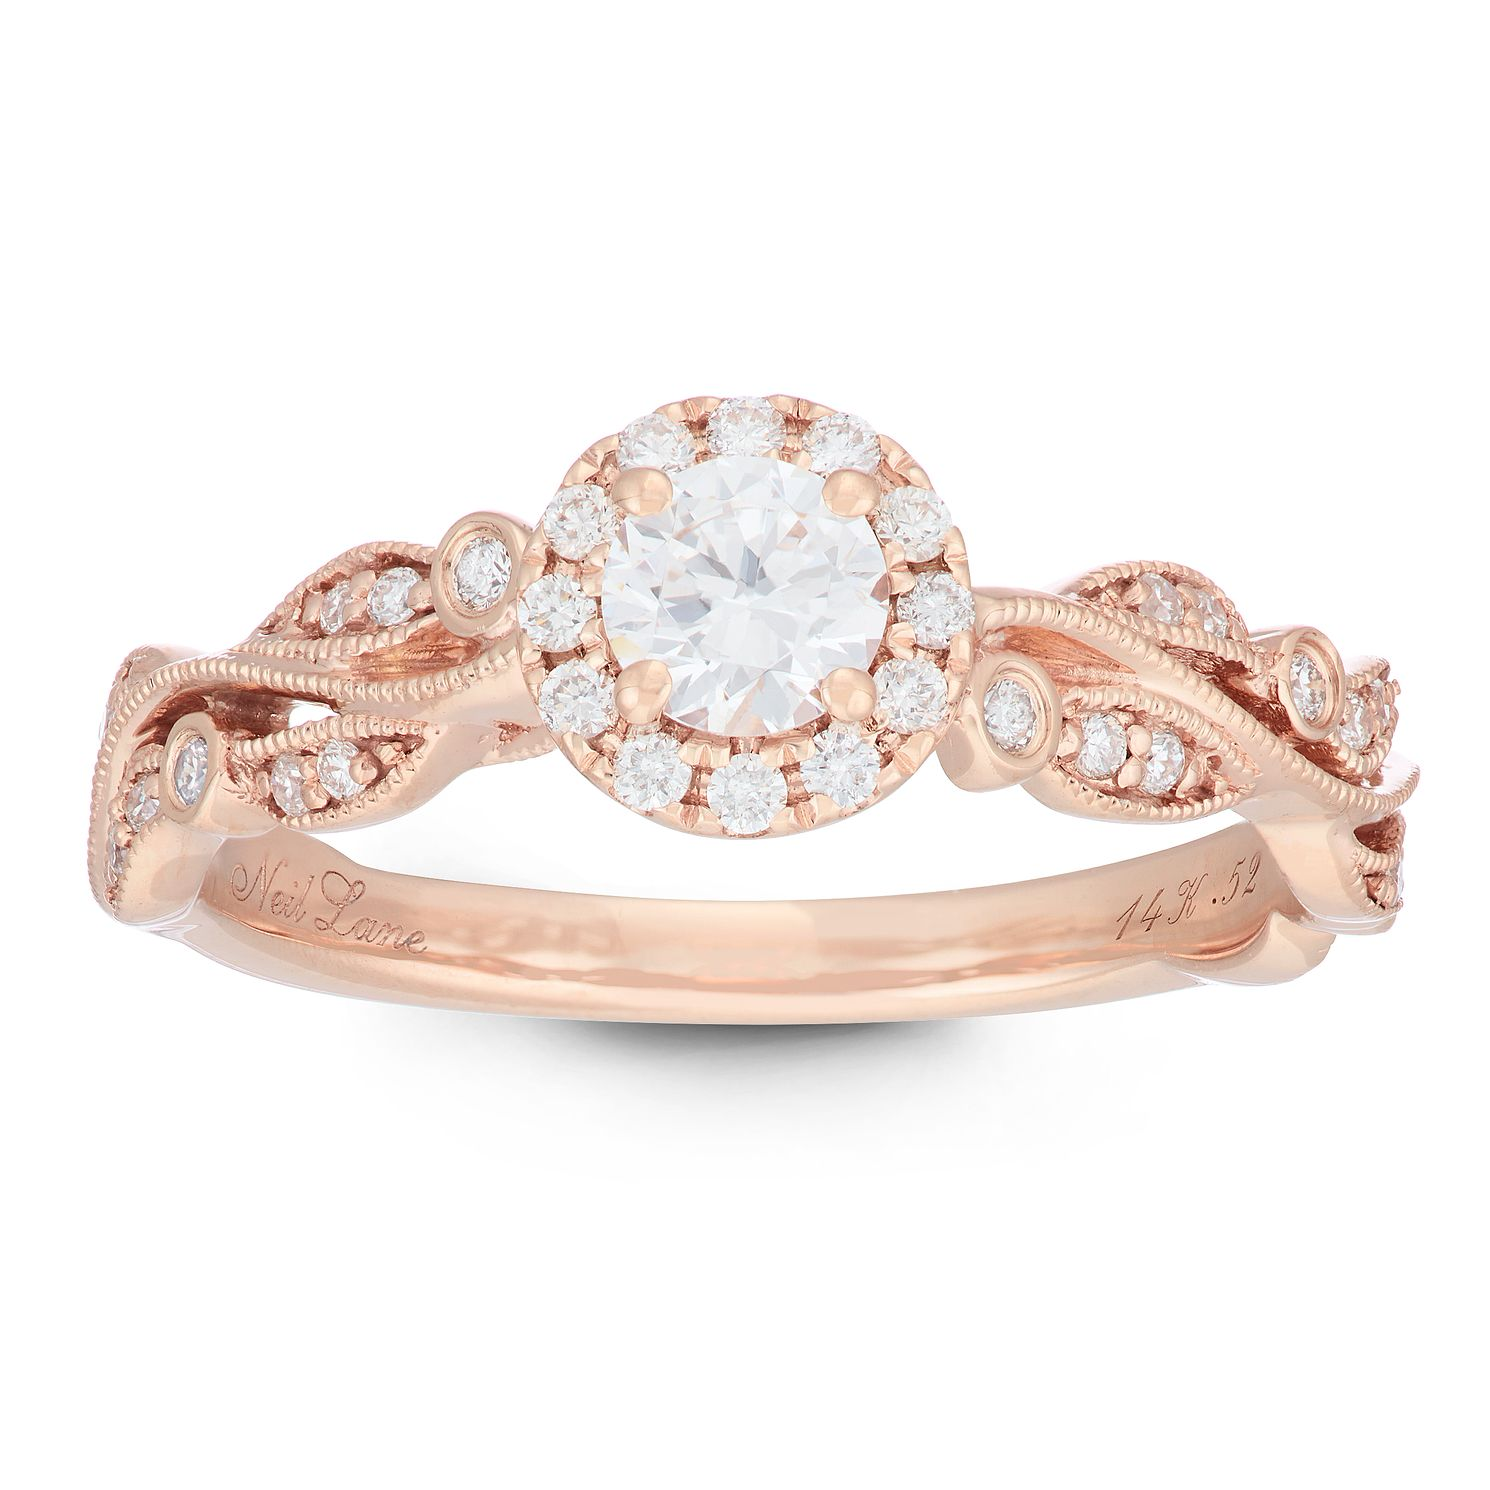 Neil Lane Designs 14ct Rose Gold 0.52ct Diamond Vine Ring - Product number 2486210